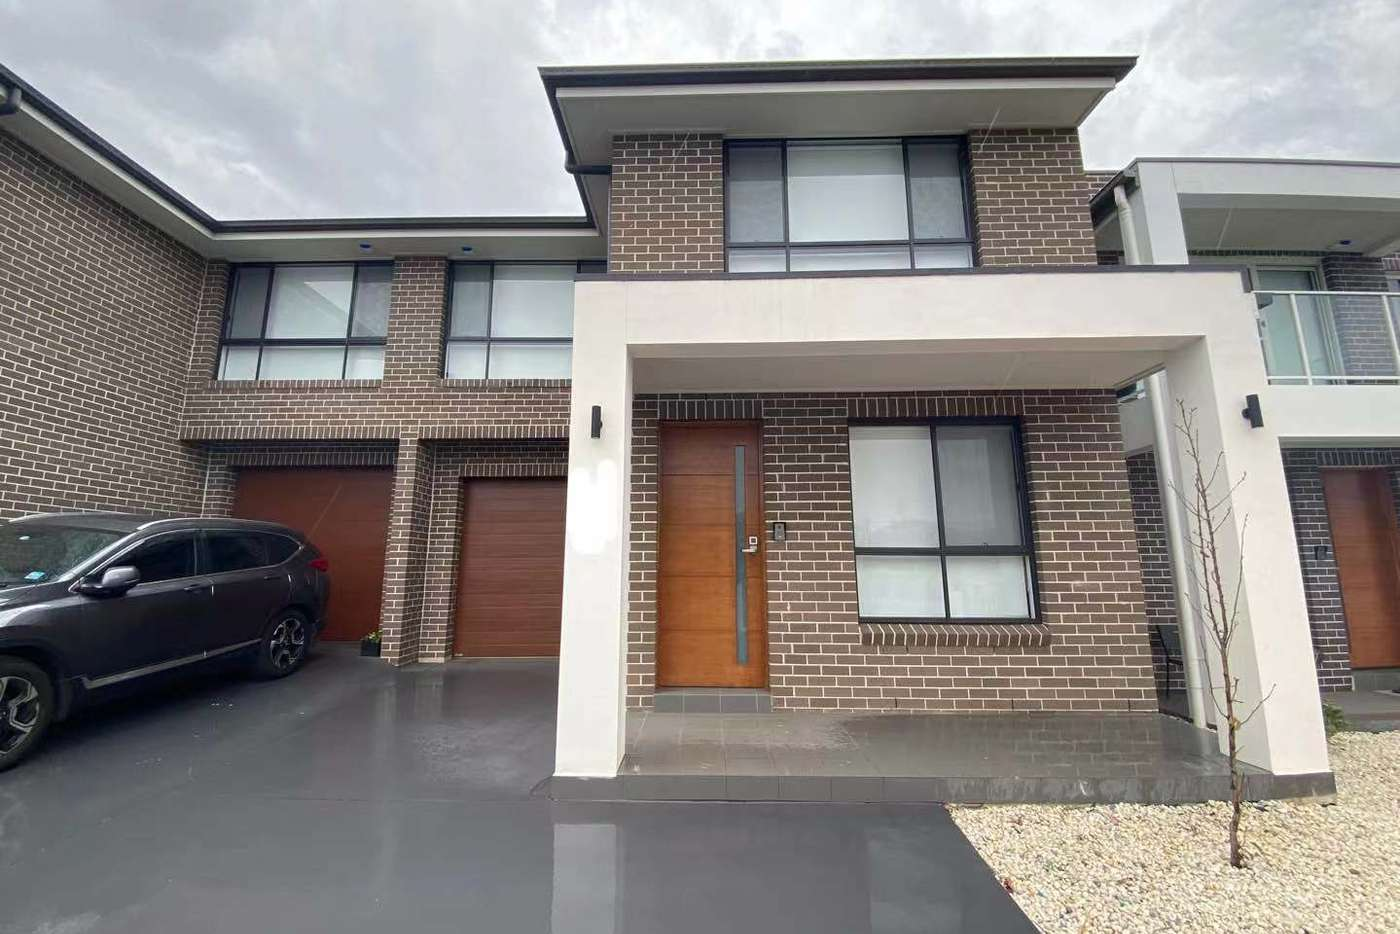 Main view of Homely townhouse listing, 1-33 Atticus Glade, Schofields NSW 2762